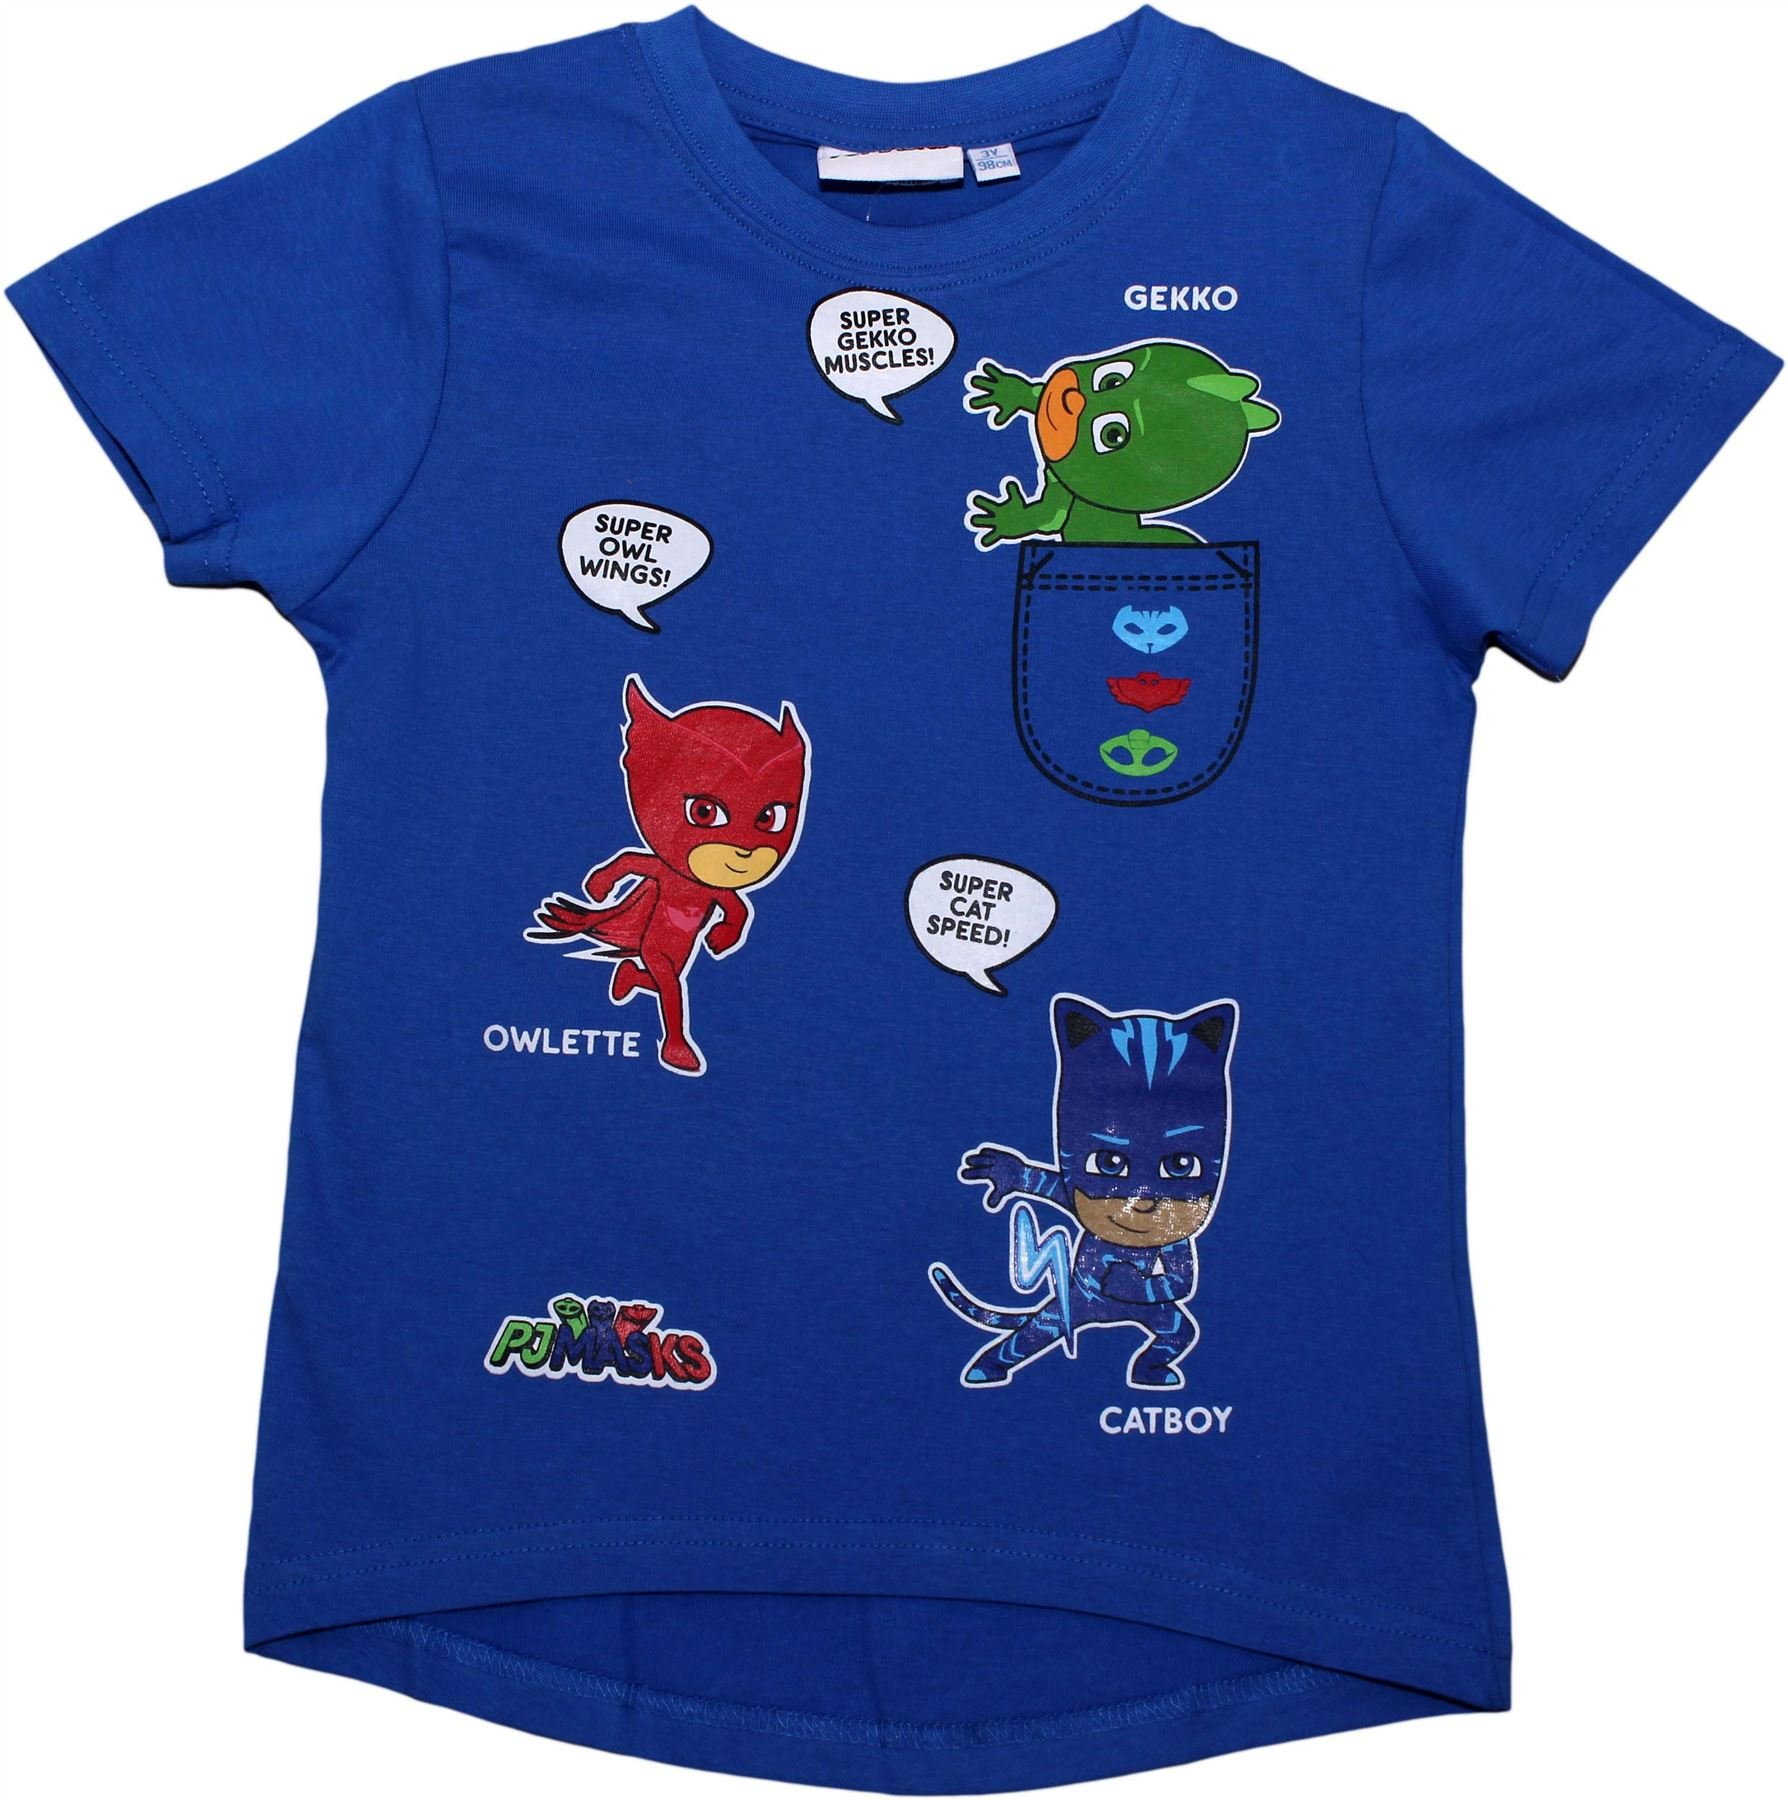 PJ Masks Boys Super Gekko Muscles Short Sleeve T Shirt Blue 3 Years - Spring Summer Collection